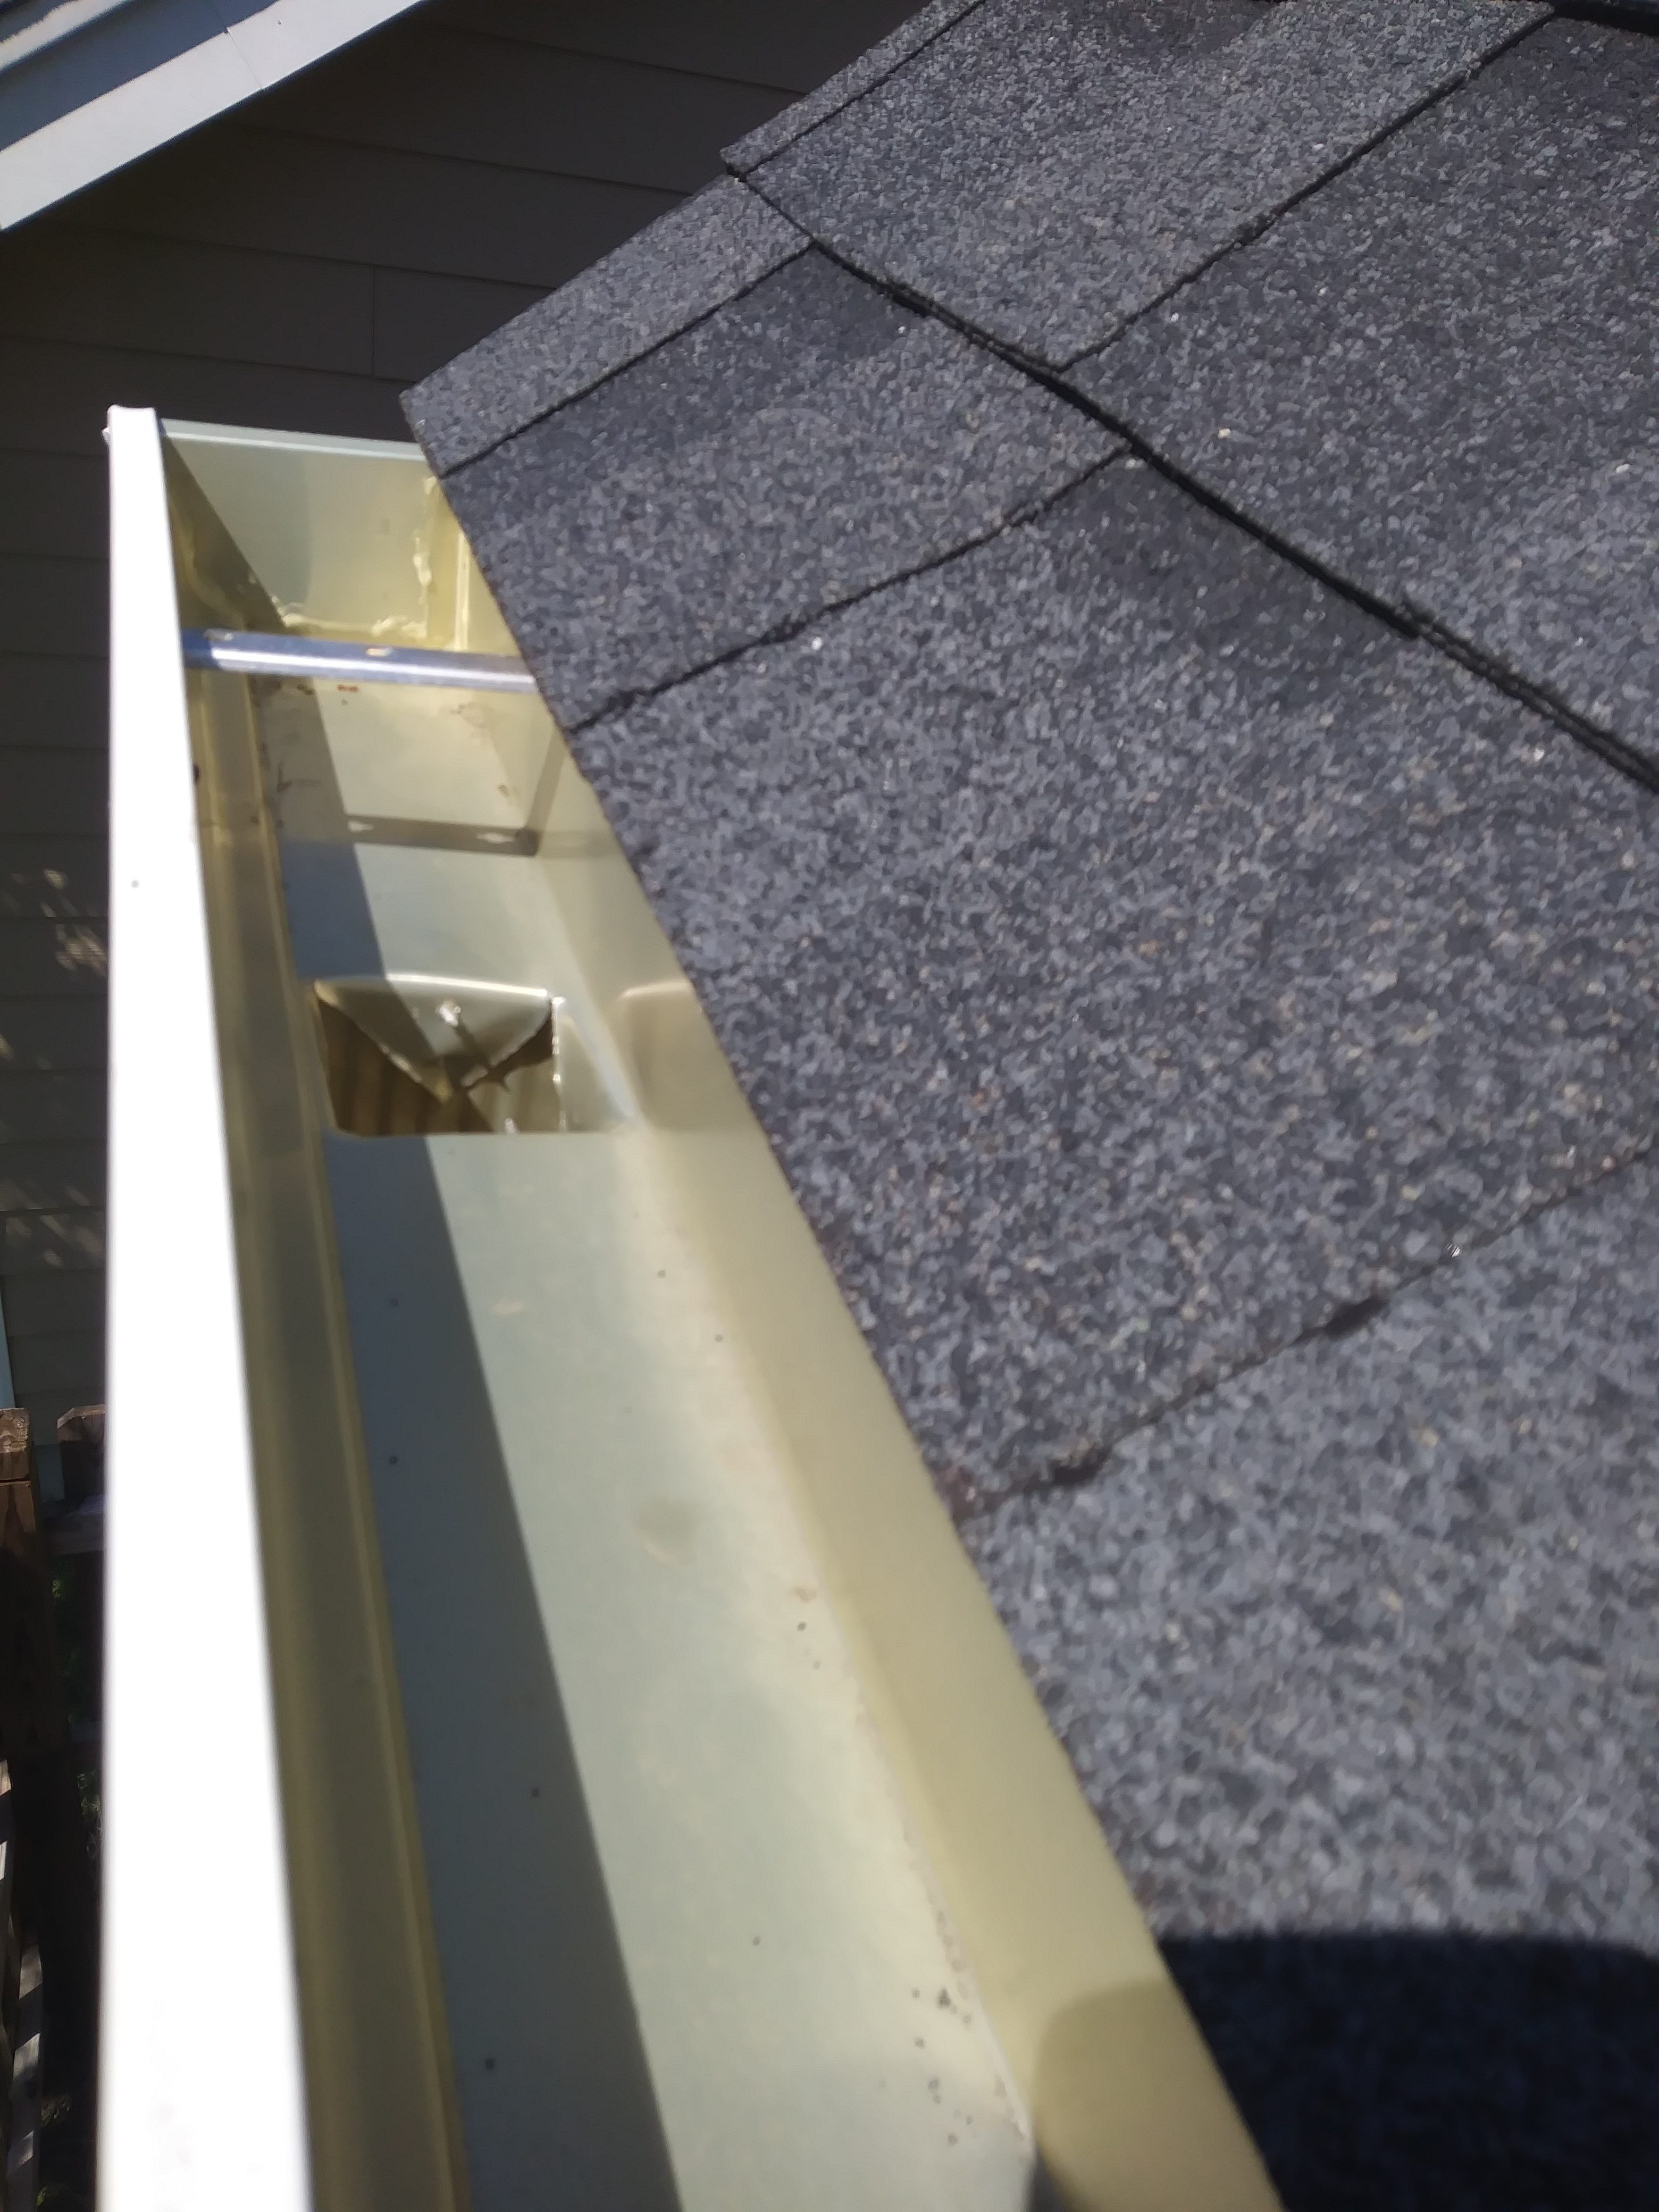 Gutter Cleaning Waco Tx Cleaning Gutters Cleaning Gutter